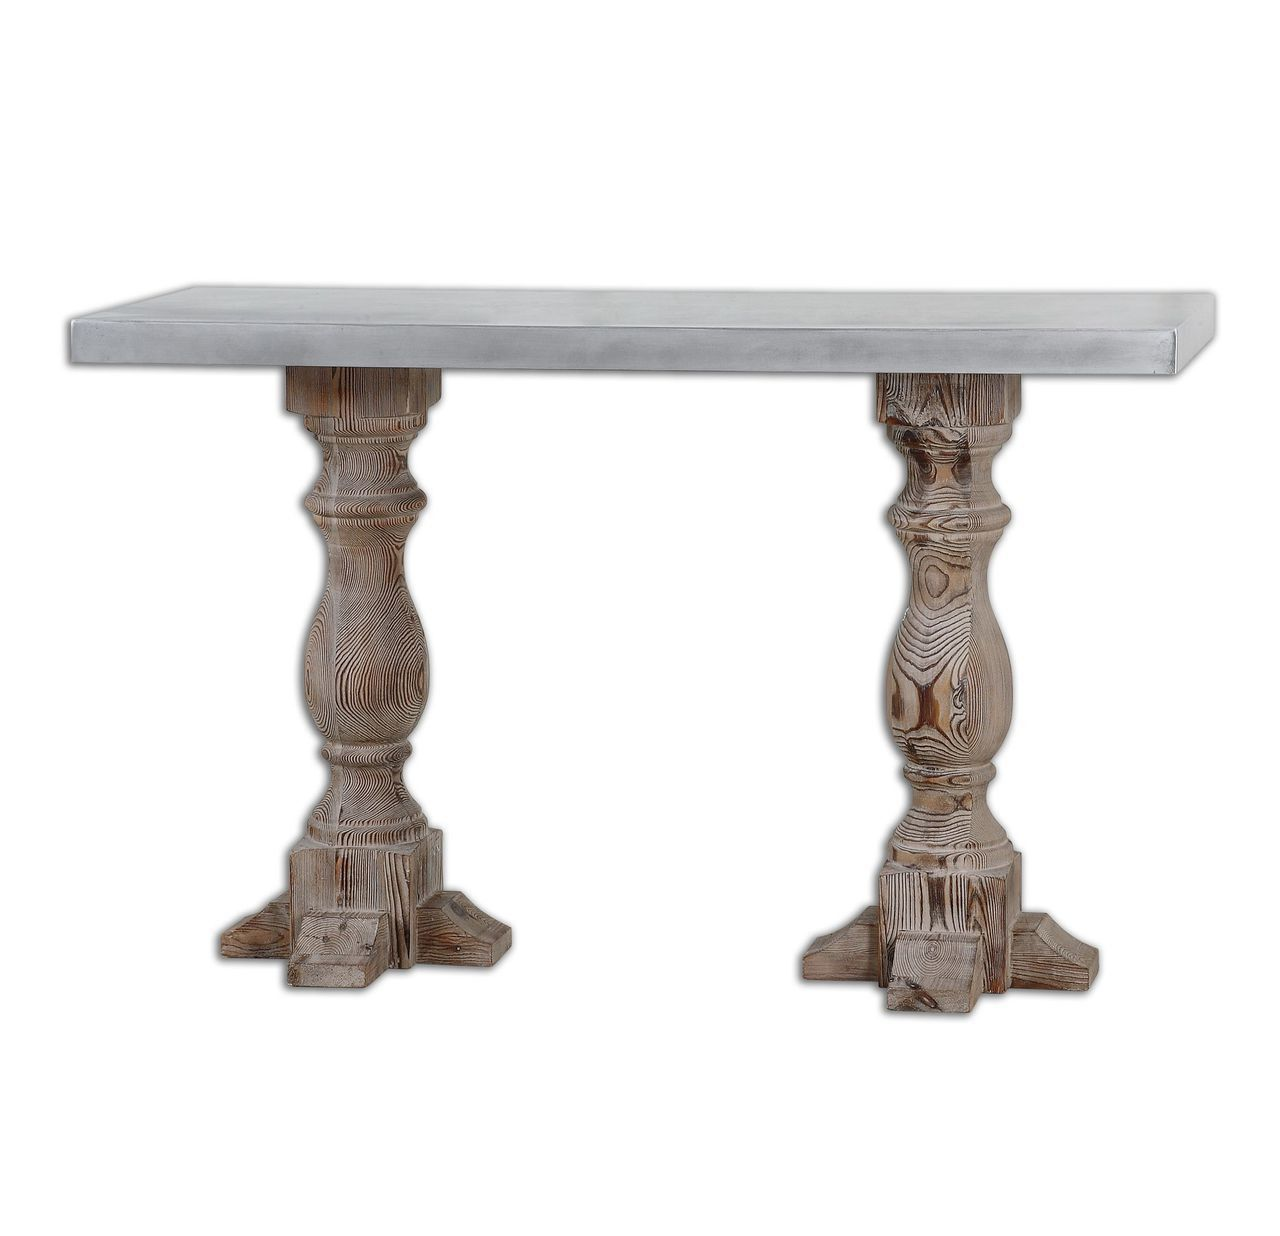 uttermost martel console table products accent dale tiffany leilani lamp tablecloth measurements waterproof patio chair covers inexpensive chairs round bronze pair lamps work